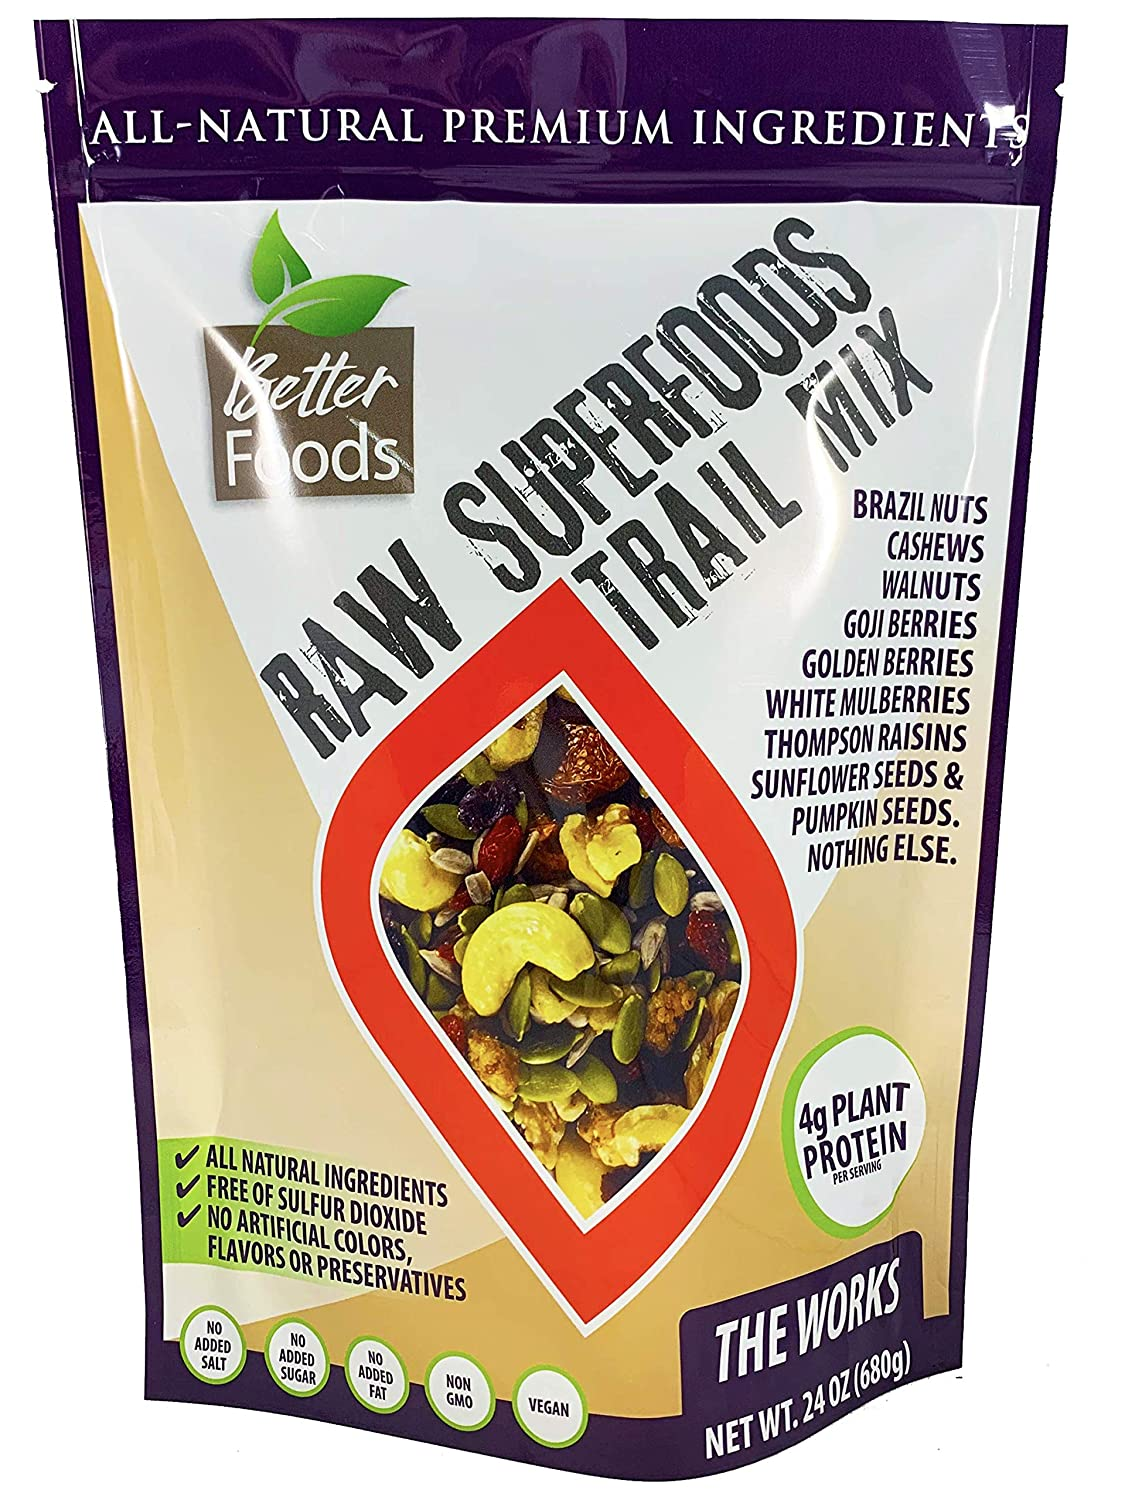 Raw Superfoods Trail Mix - The Works (Goji Berries, Golden Berries, Mulberries, Raisins, Brazil Nuts, Cashews, Walnuts, Pumpkin and Sunflower Seeds)